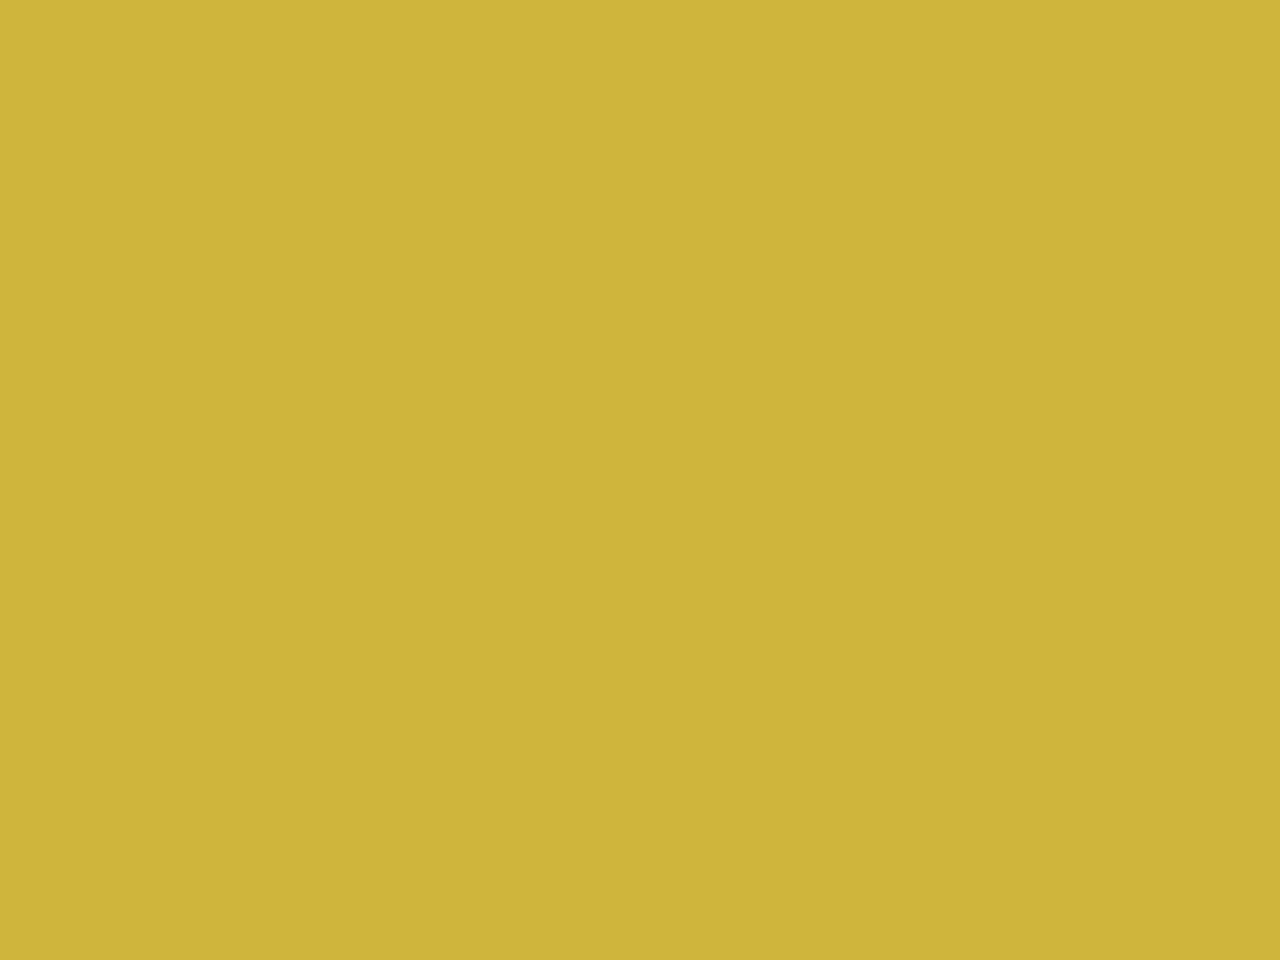 1280x960 Old Gold Solid Color Background